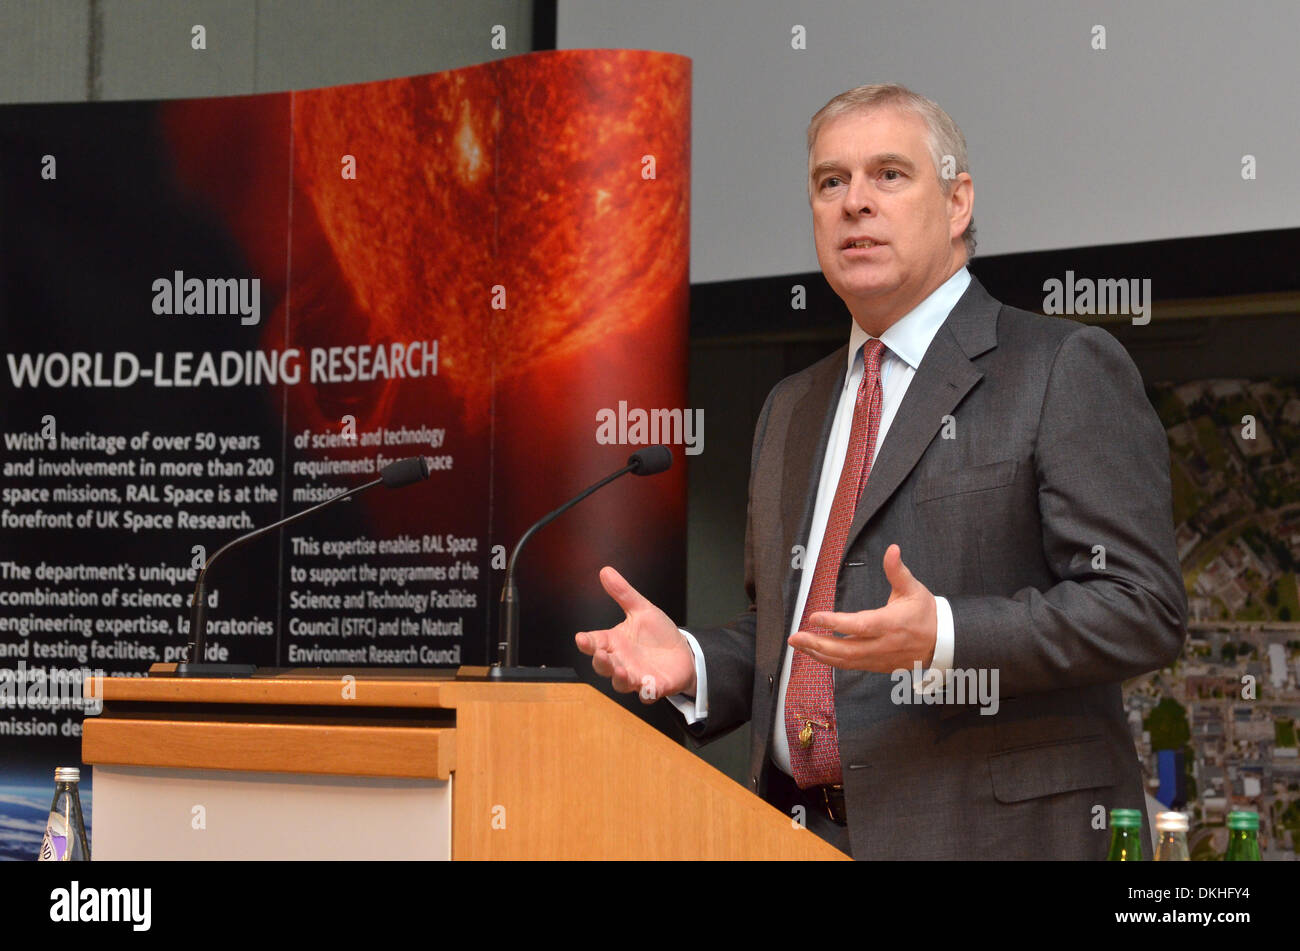 Rutherford Labs, Oxfordshire, UK. 5th December 2013. HRH Prince Andrew, the Duke of York, speaking  at the Rutherford - Stock Image